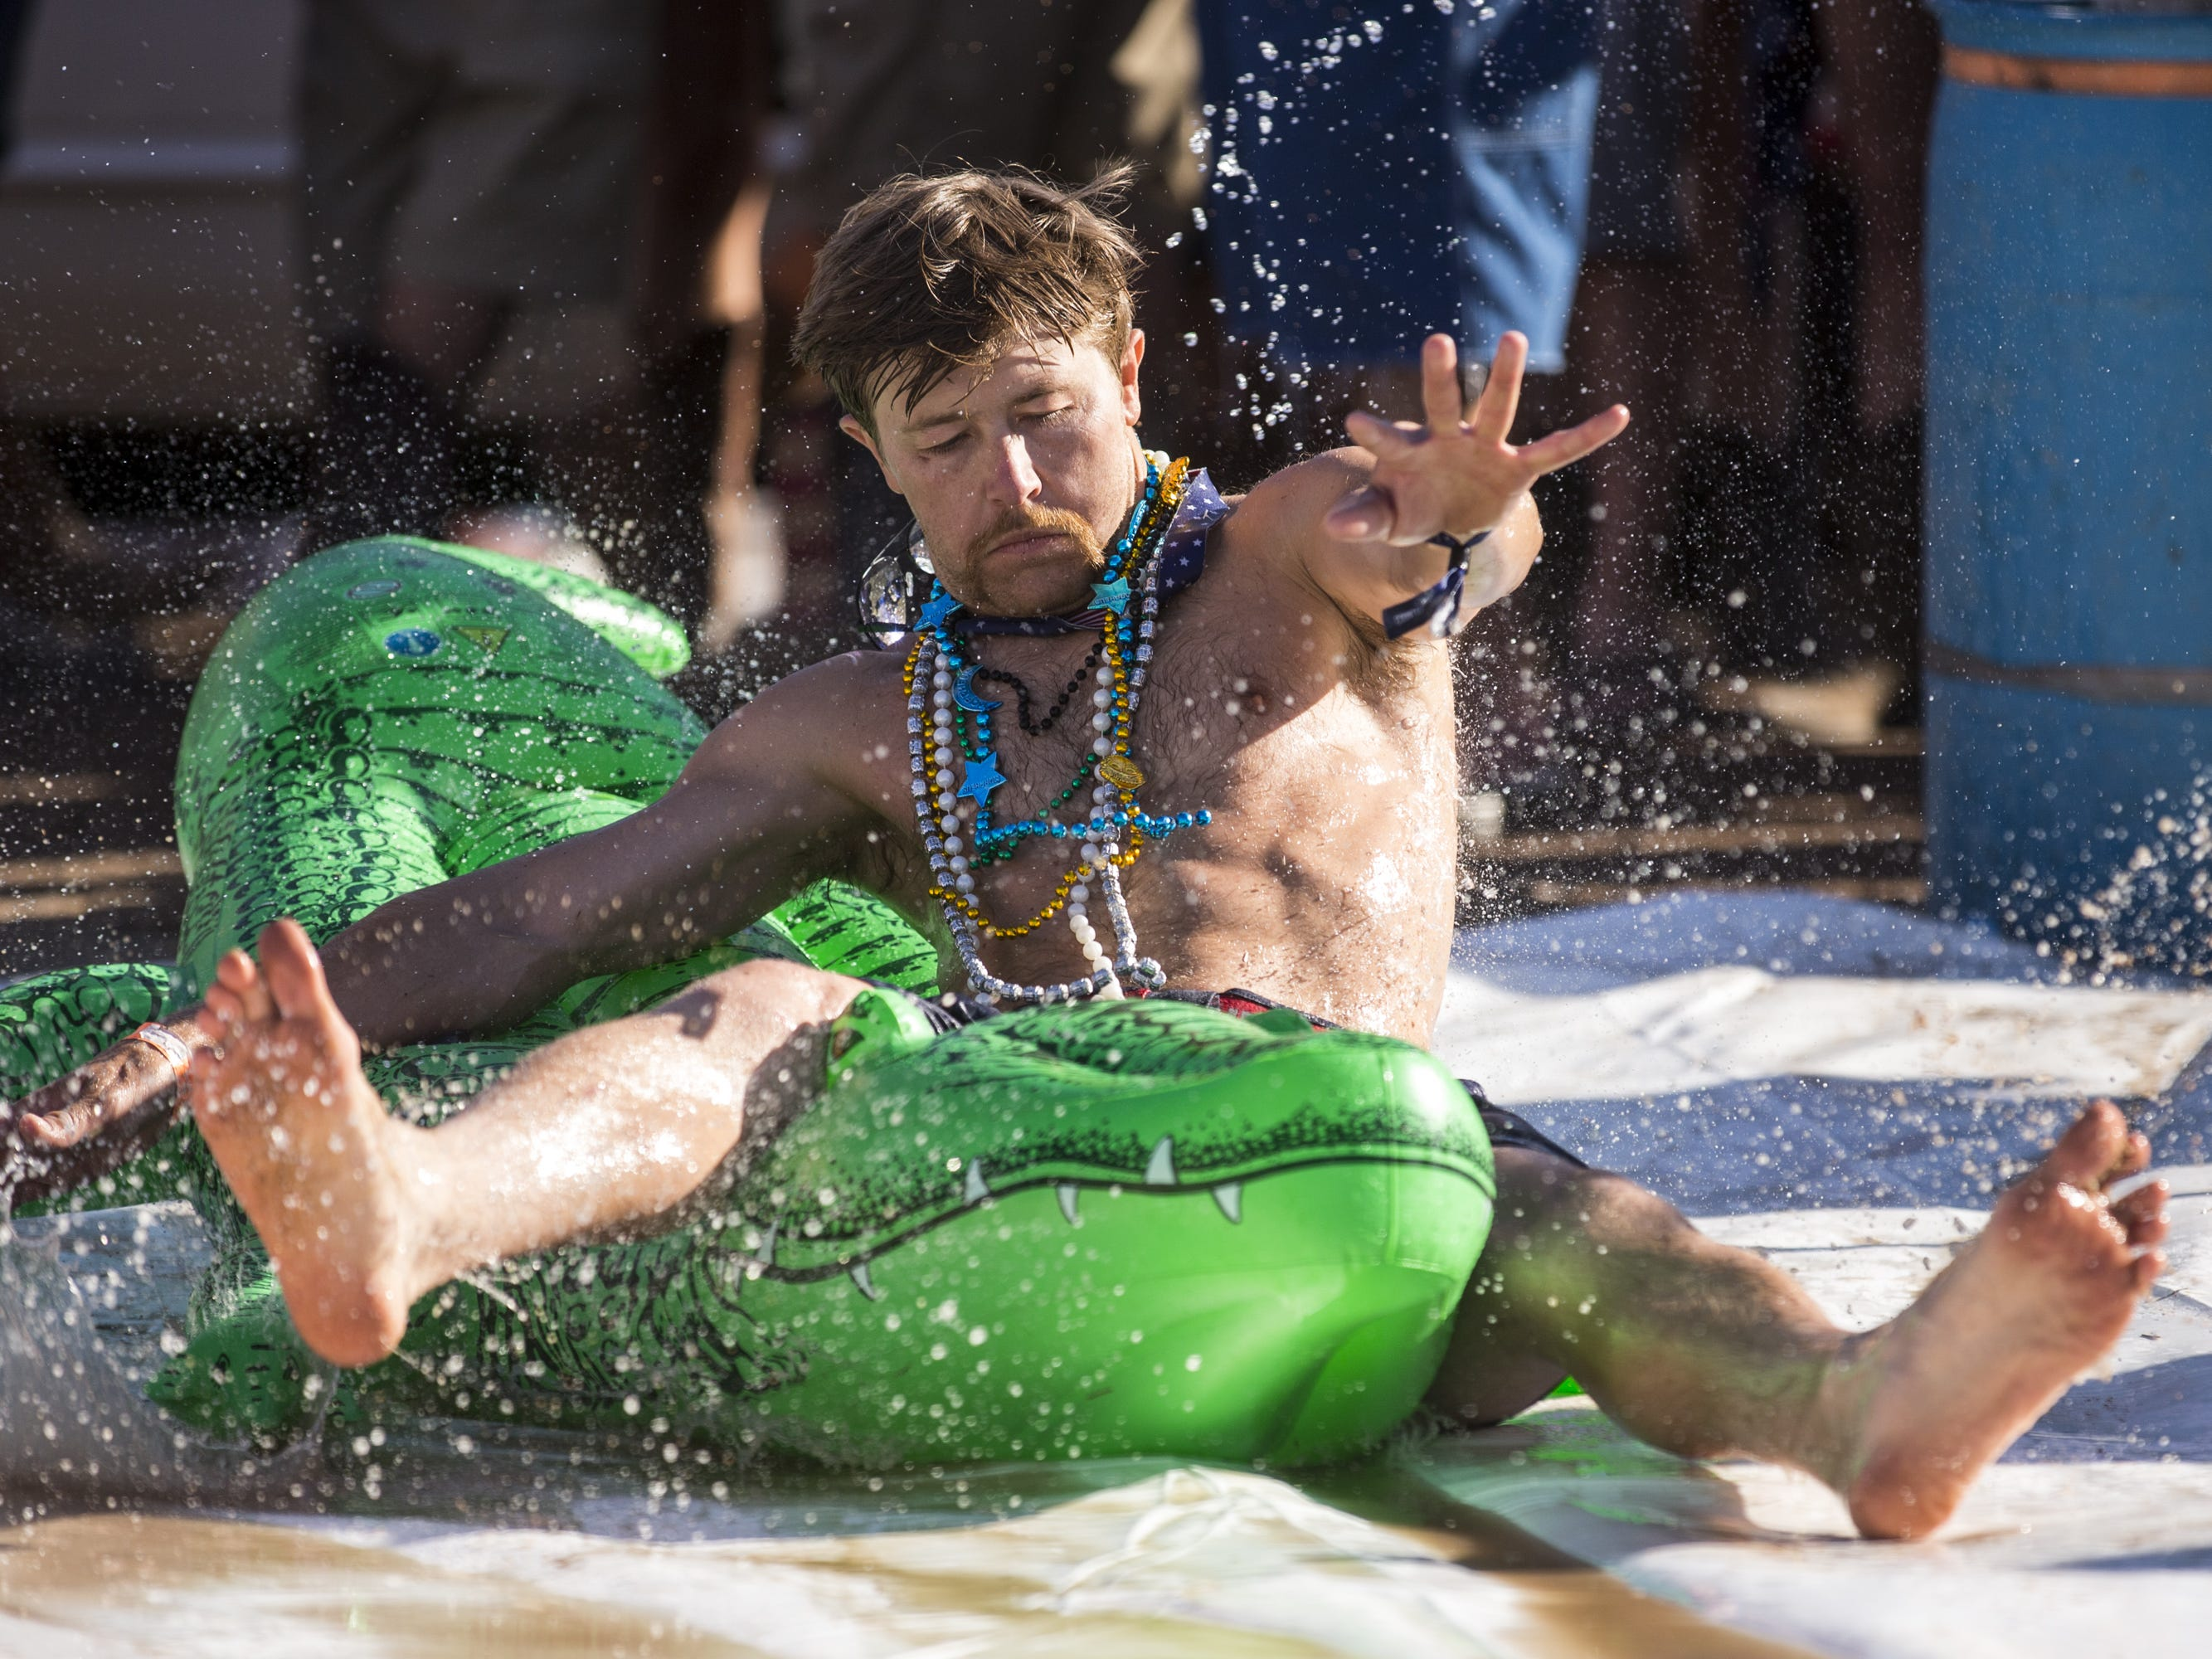 Dylan McGuire does a slip and slide at the Crazy Coyote campground on Saturday, April 13, 2019, during Day 3 of Country Thunder Arizona in Florence, Ariz.